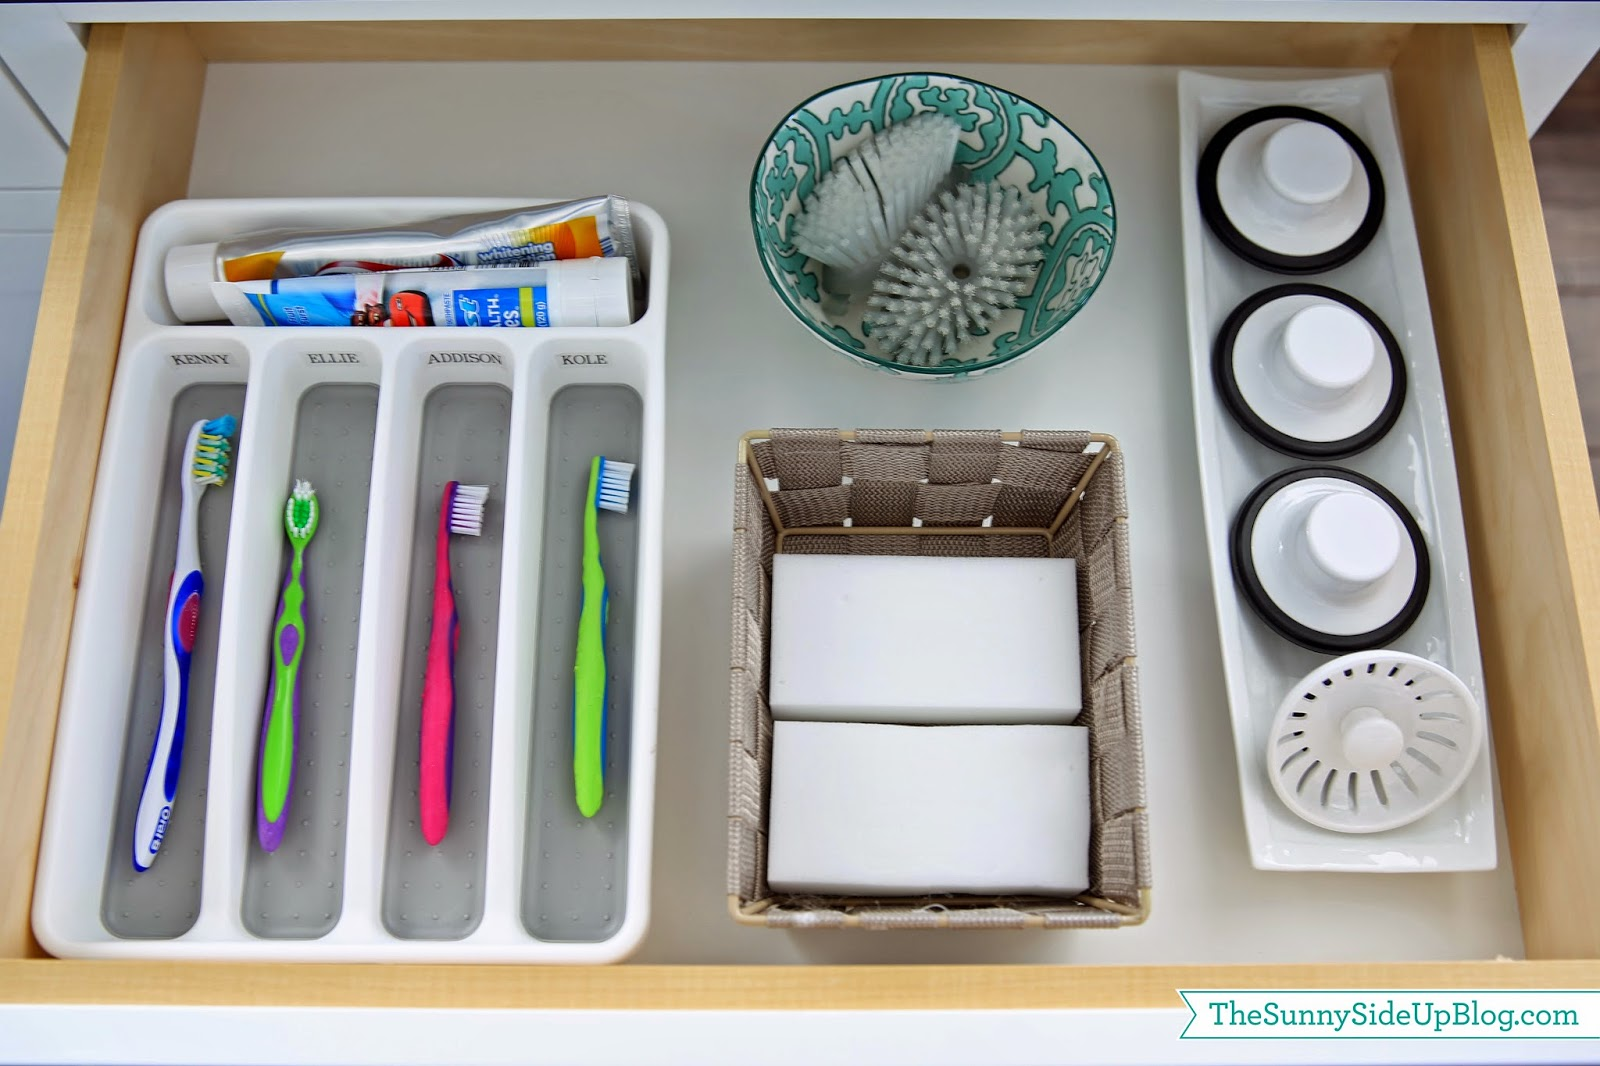 Organized kitchen sink drawer the sunny side up blog - Keep toothpaste kitchen ...